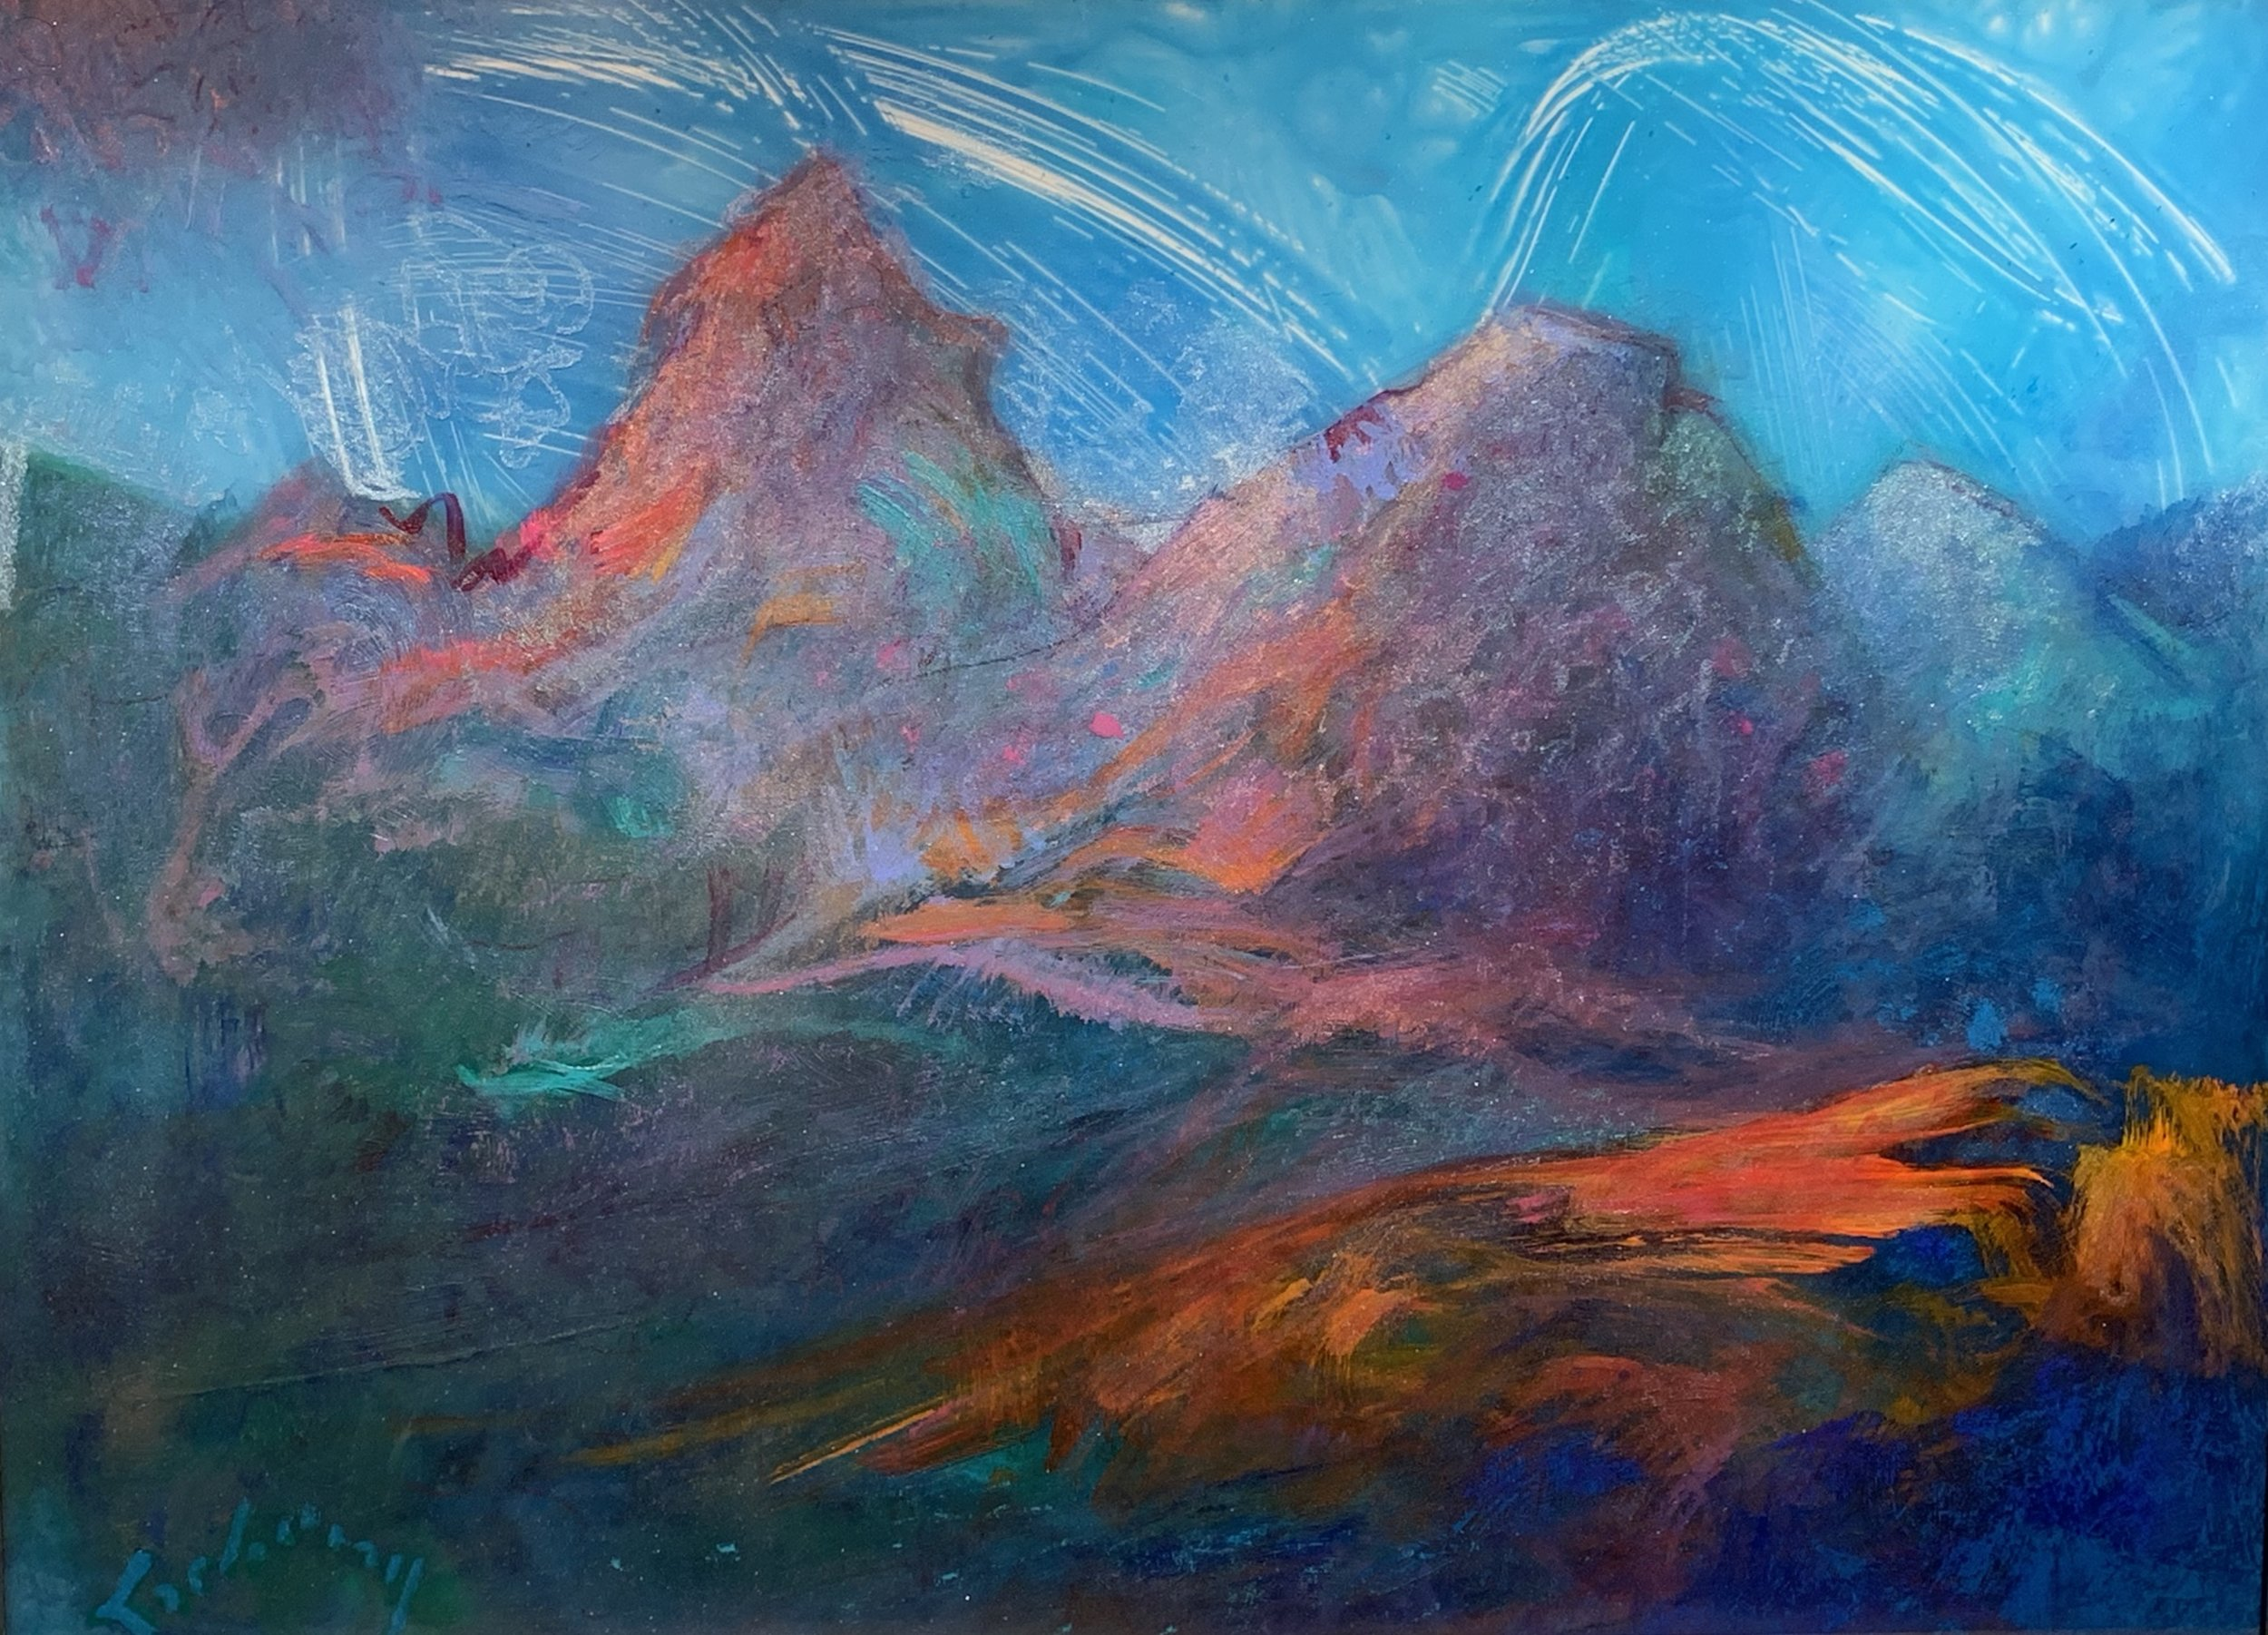 LAND OF DREAMS   Acrylic and Pastel, 24 x 30   Available